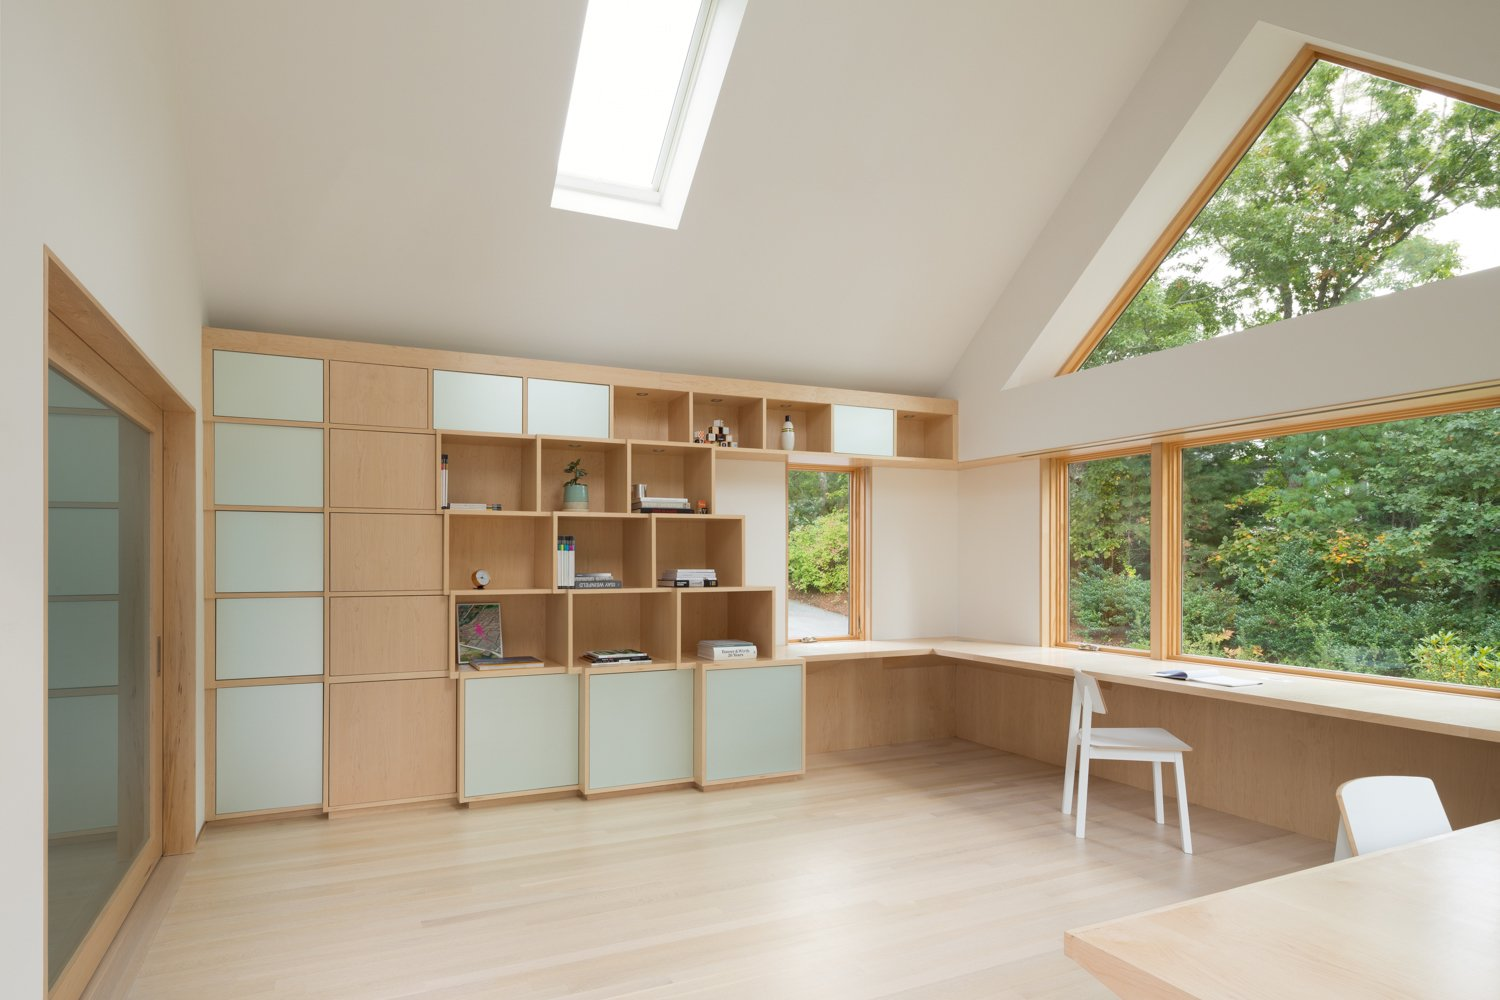 The pixelated shelving system, made of birch and acid-etched mirrored glass, as well as the cantilevered desk, were customized for the Woolford's space. A large glass sliding door framed in white oak separates the addition from the rest of the home. The chairs are from Ikea.  Home Offices and Workspaces We Love by Matthew Keeshin from A Bright Office Addition in Cape Cod